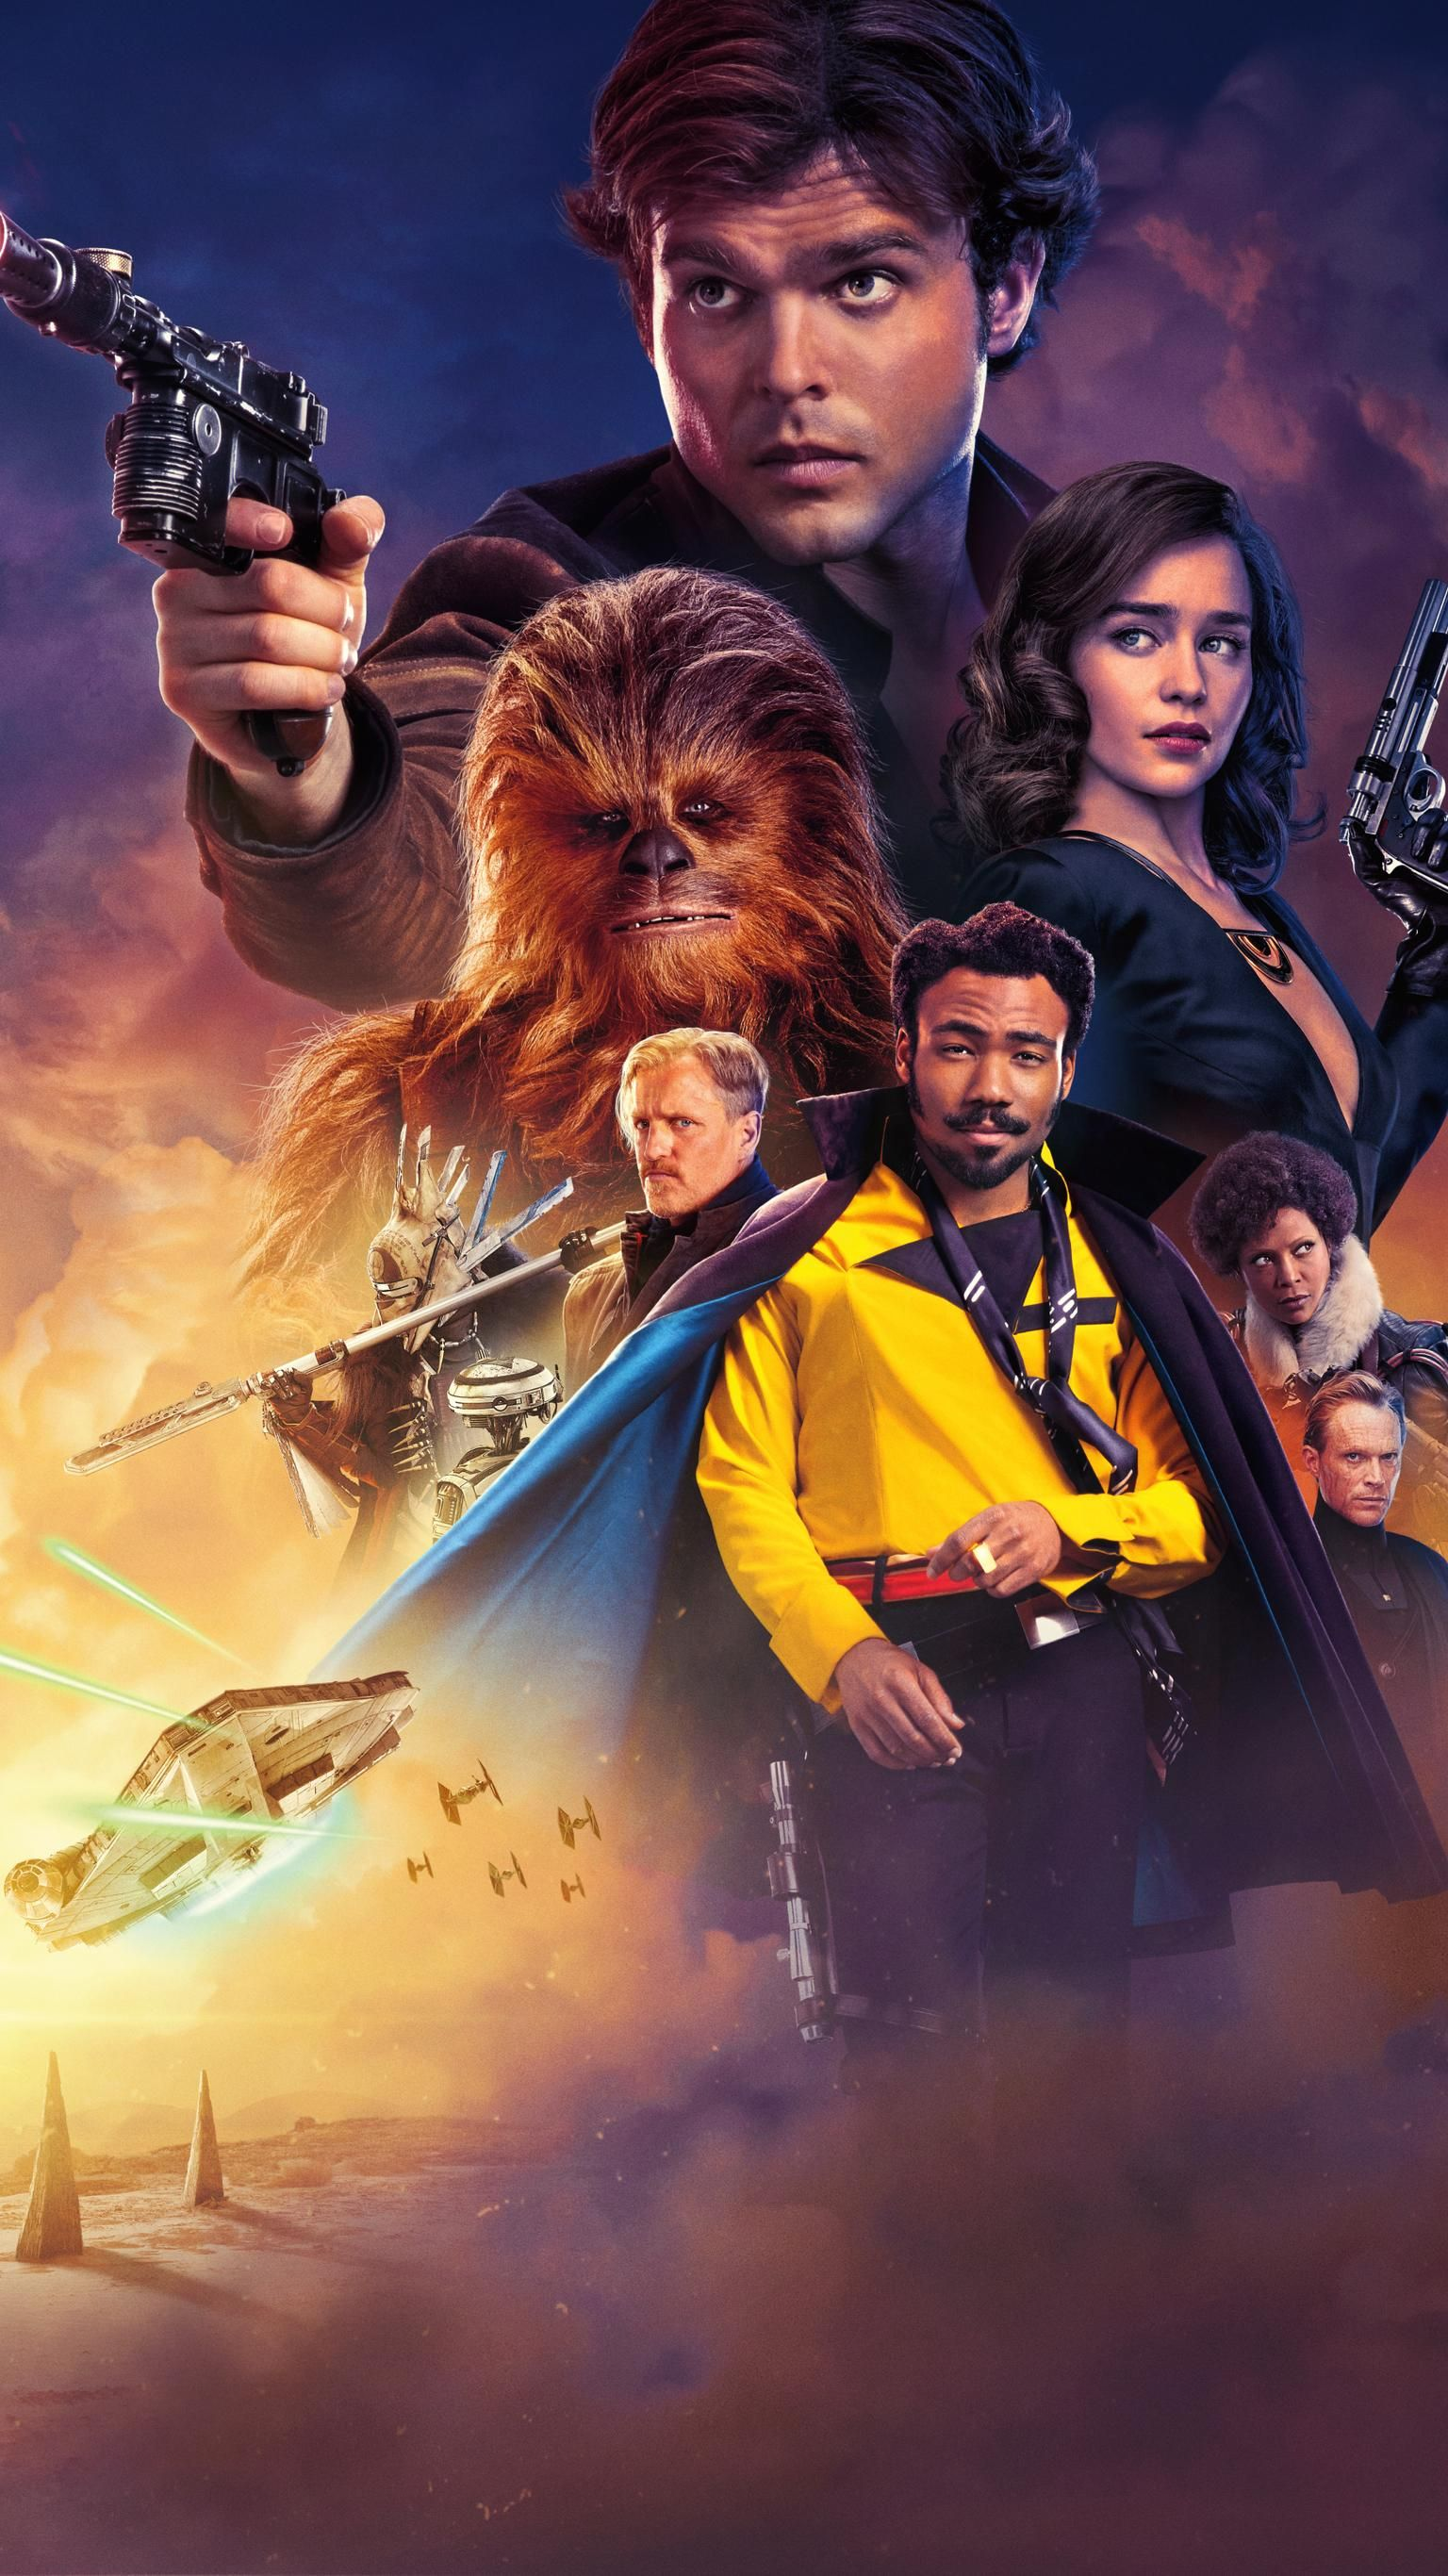 Solo A Star Wars Story 2018 Phone Wallpaper Moviemania In 2020 War Stories Star Wars Poster Free Movies Online